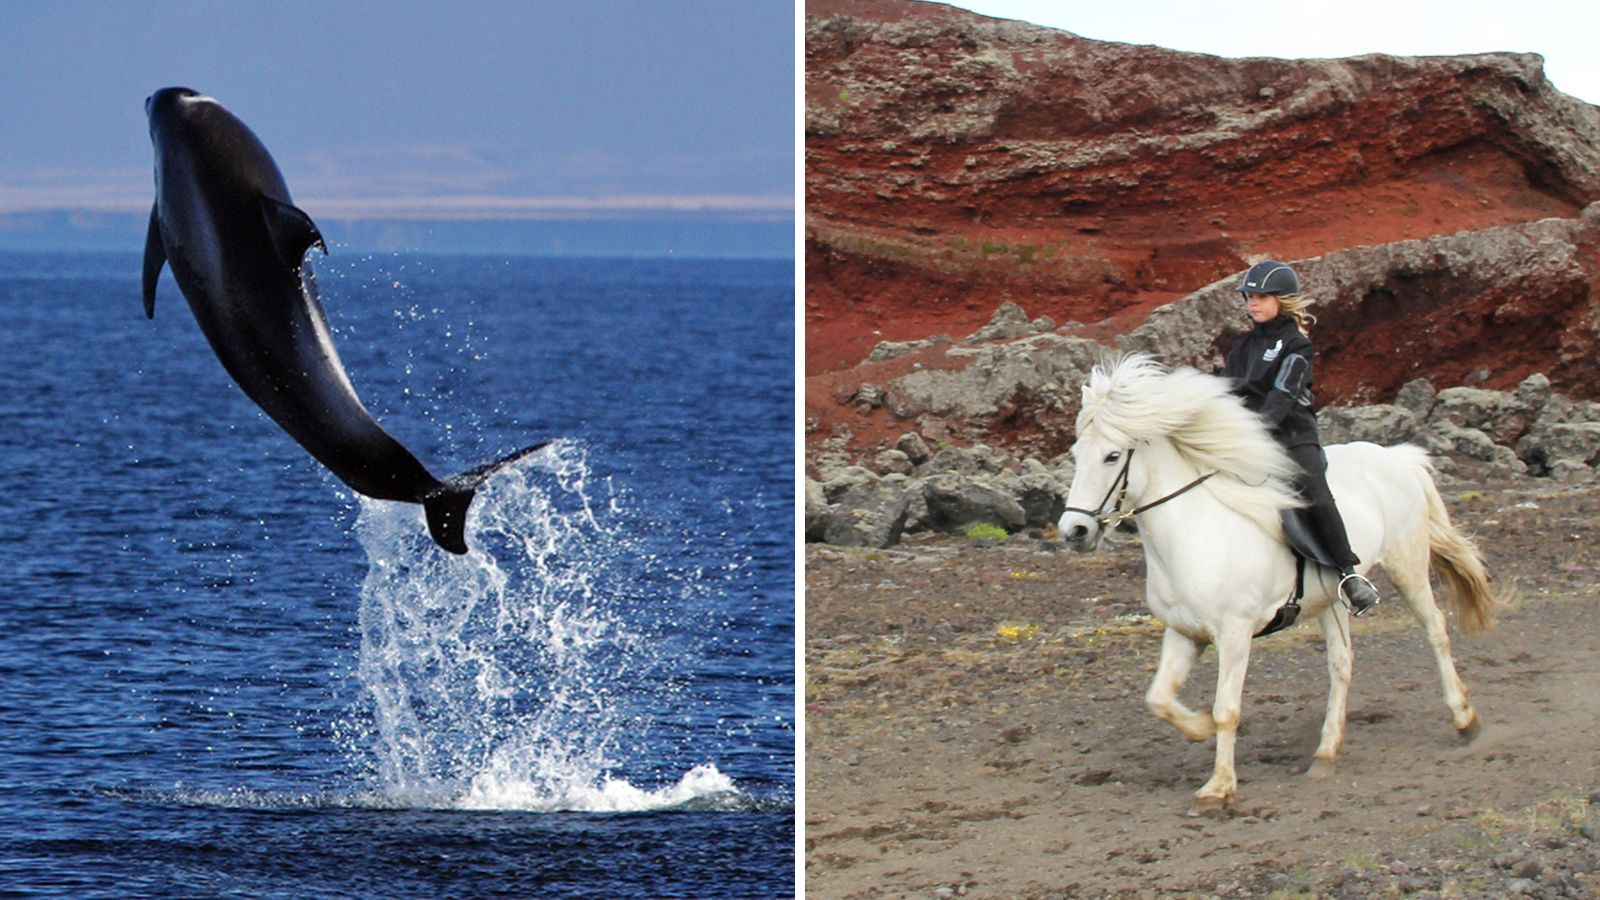 Combo image of horses and whales